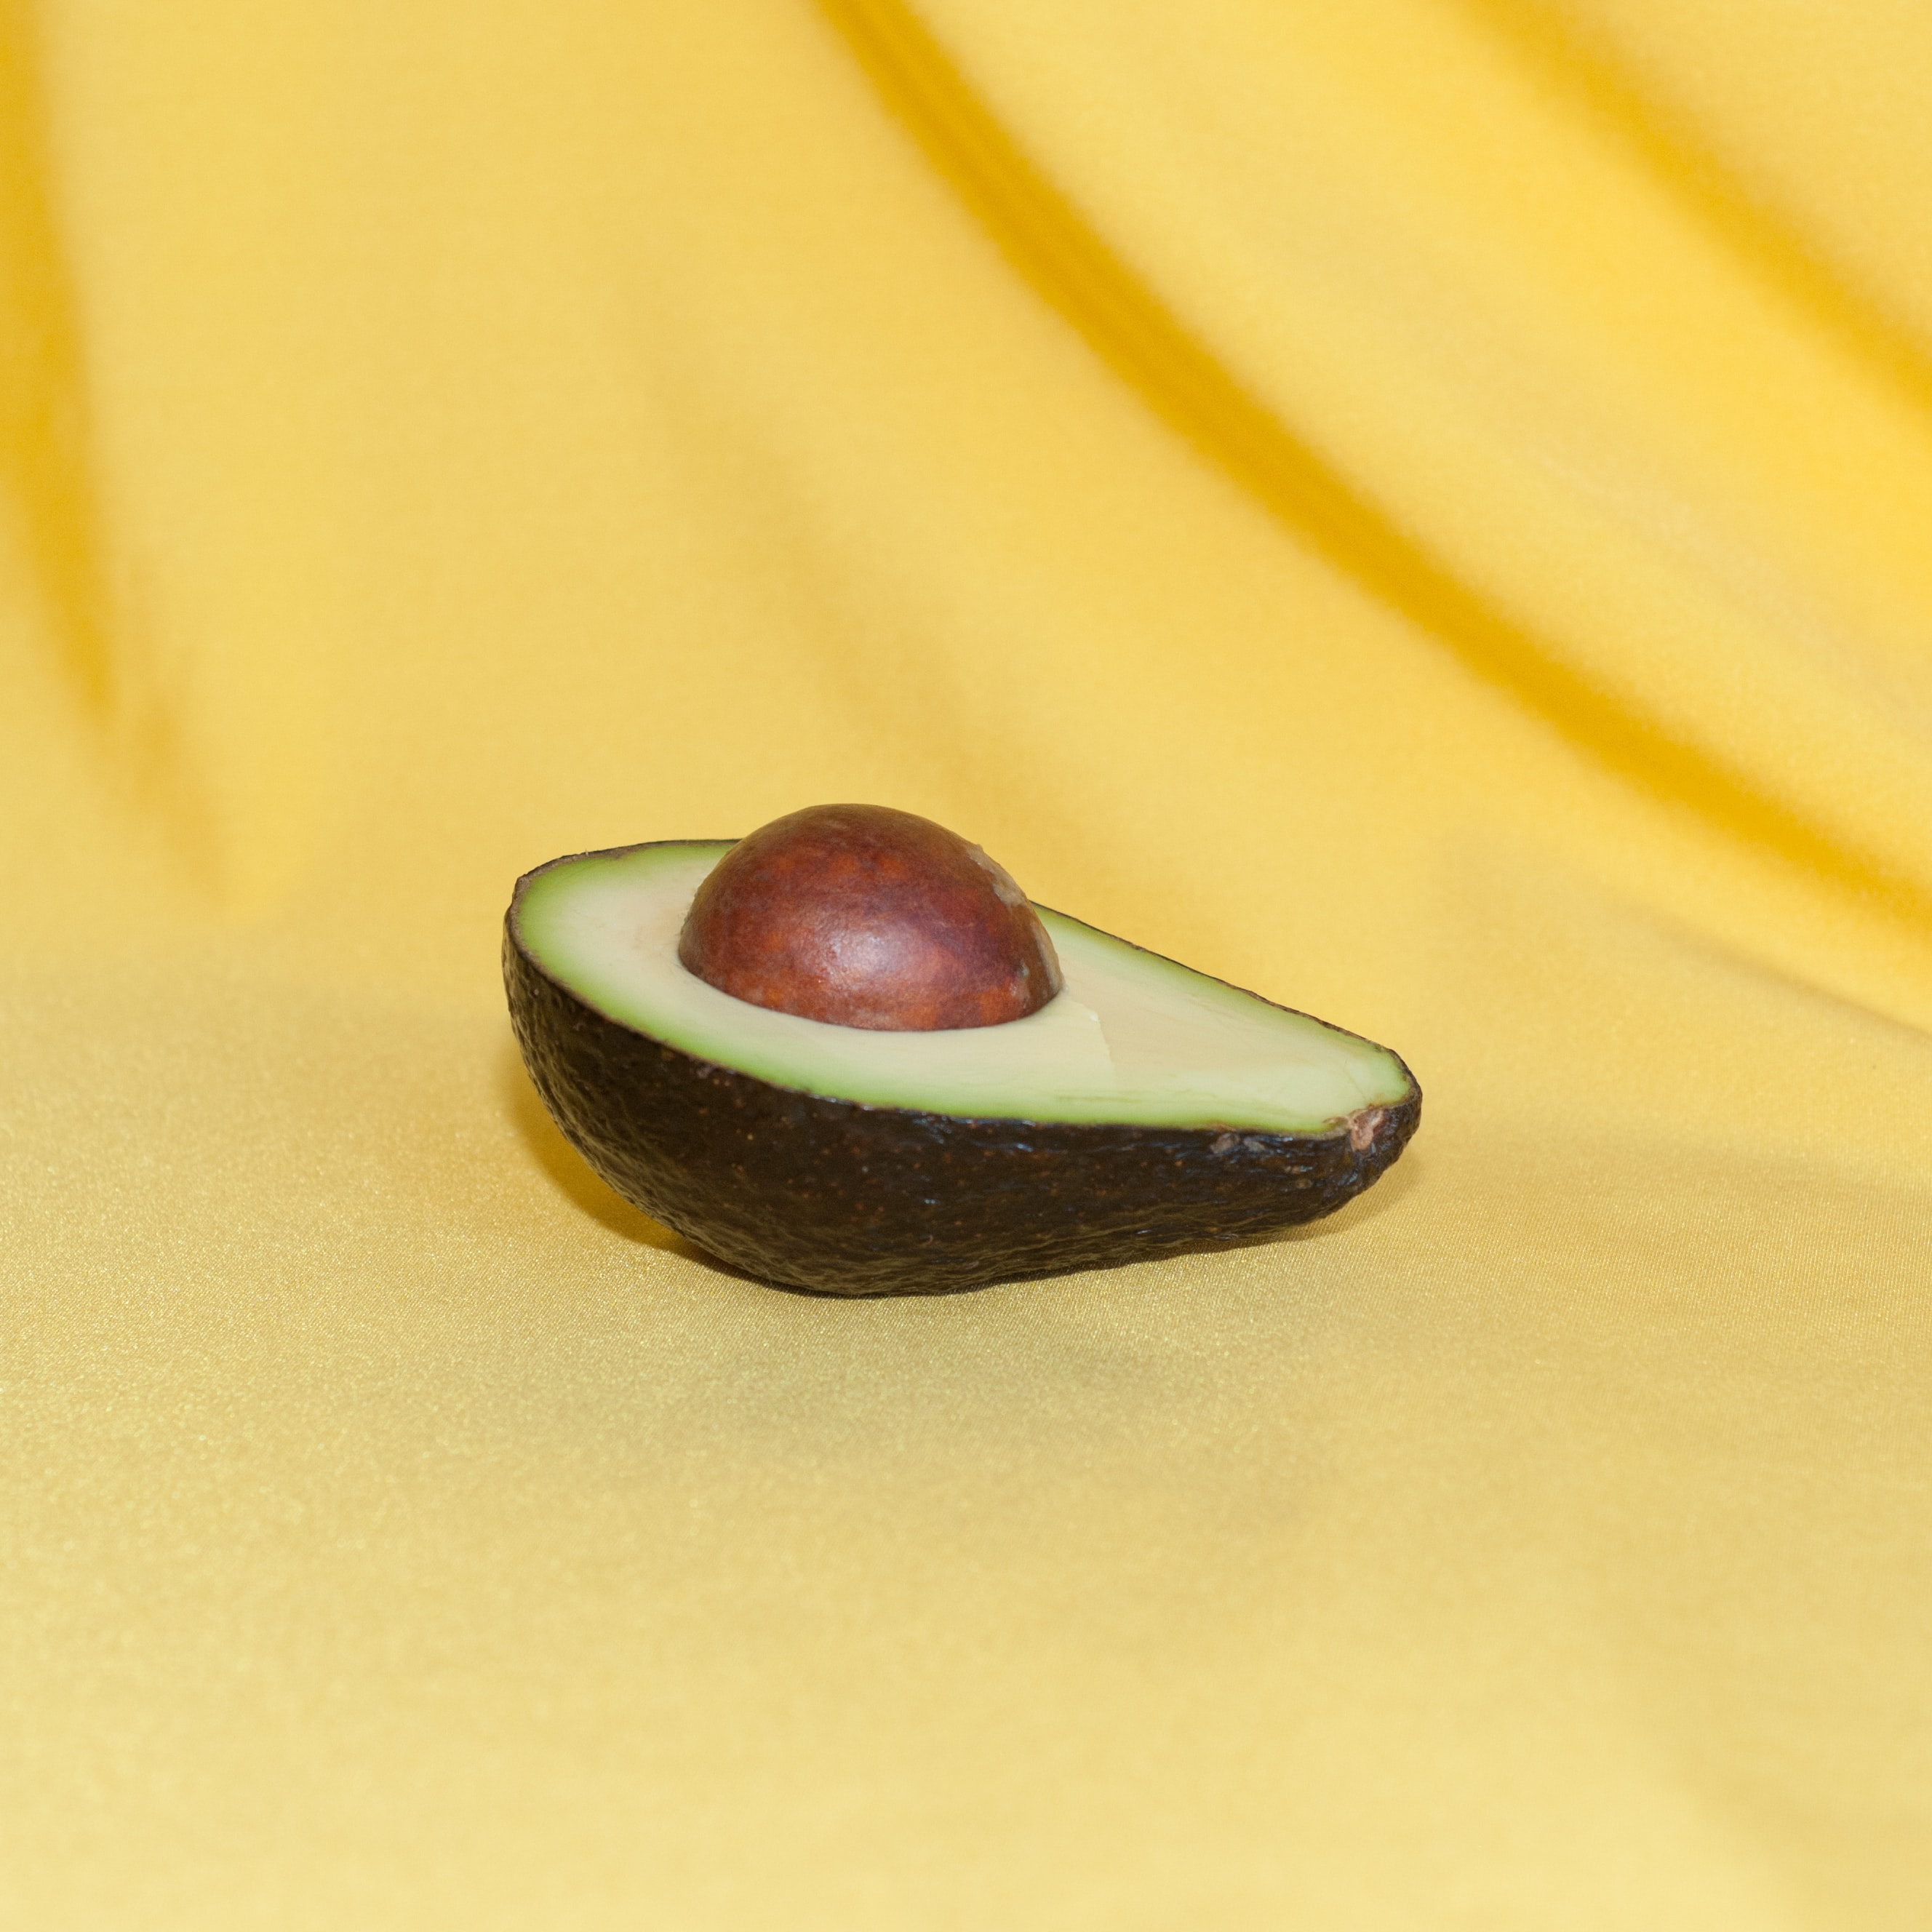 Half of an avocado against a yellow background